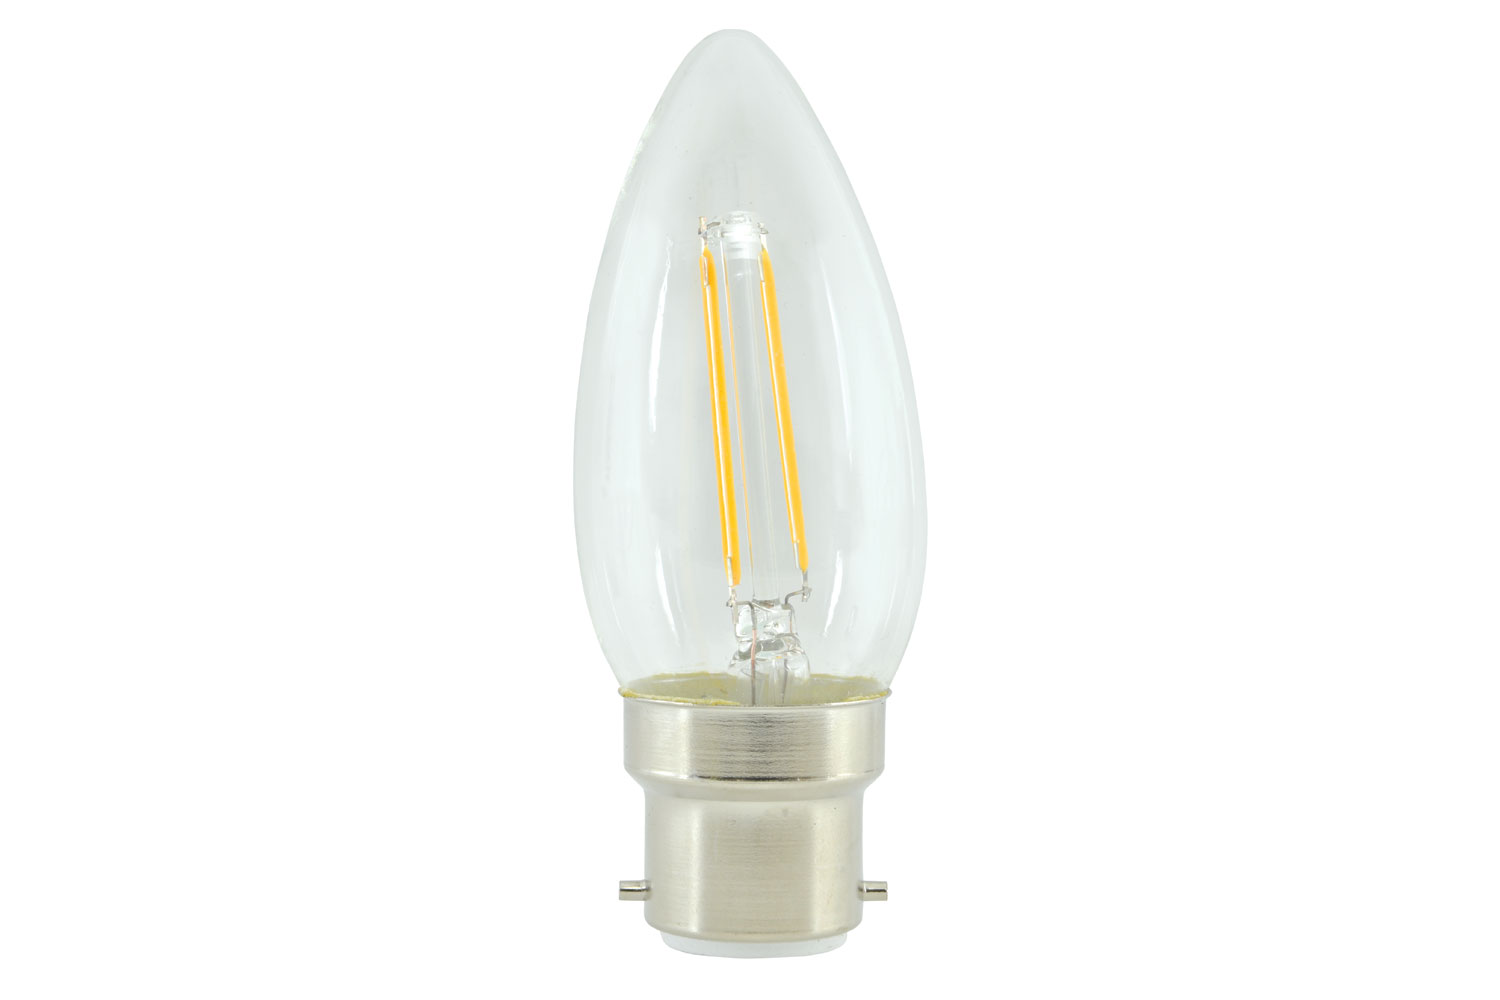 lyyt Candle Filament Lamp 2W LED B22 WW